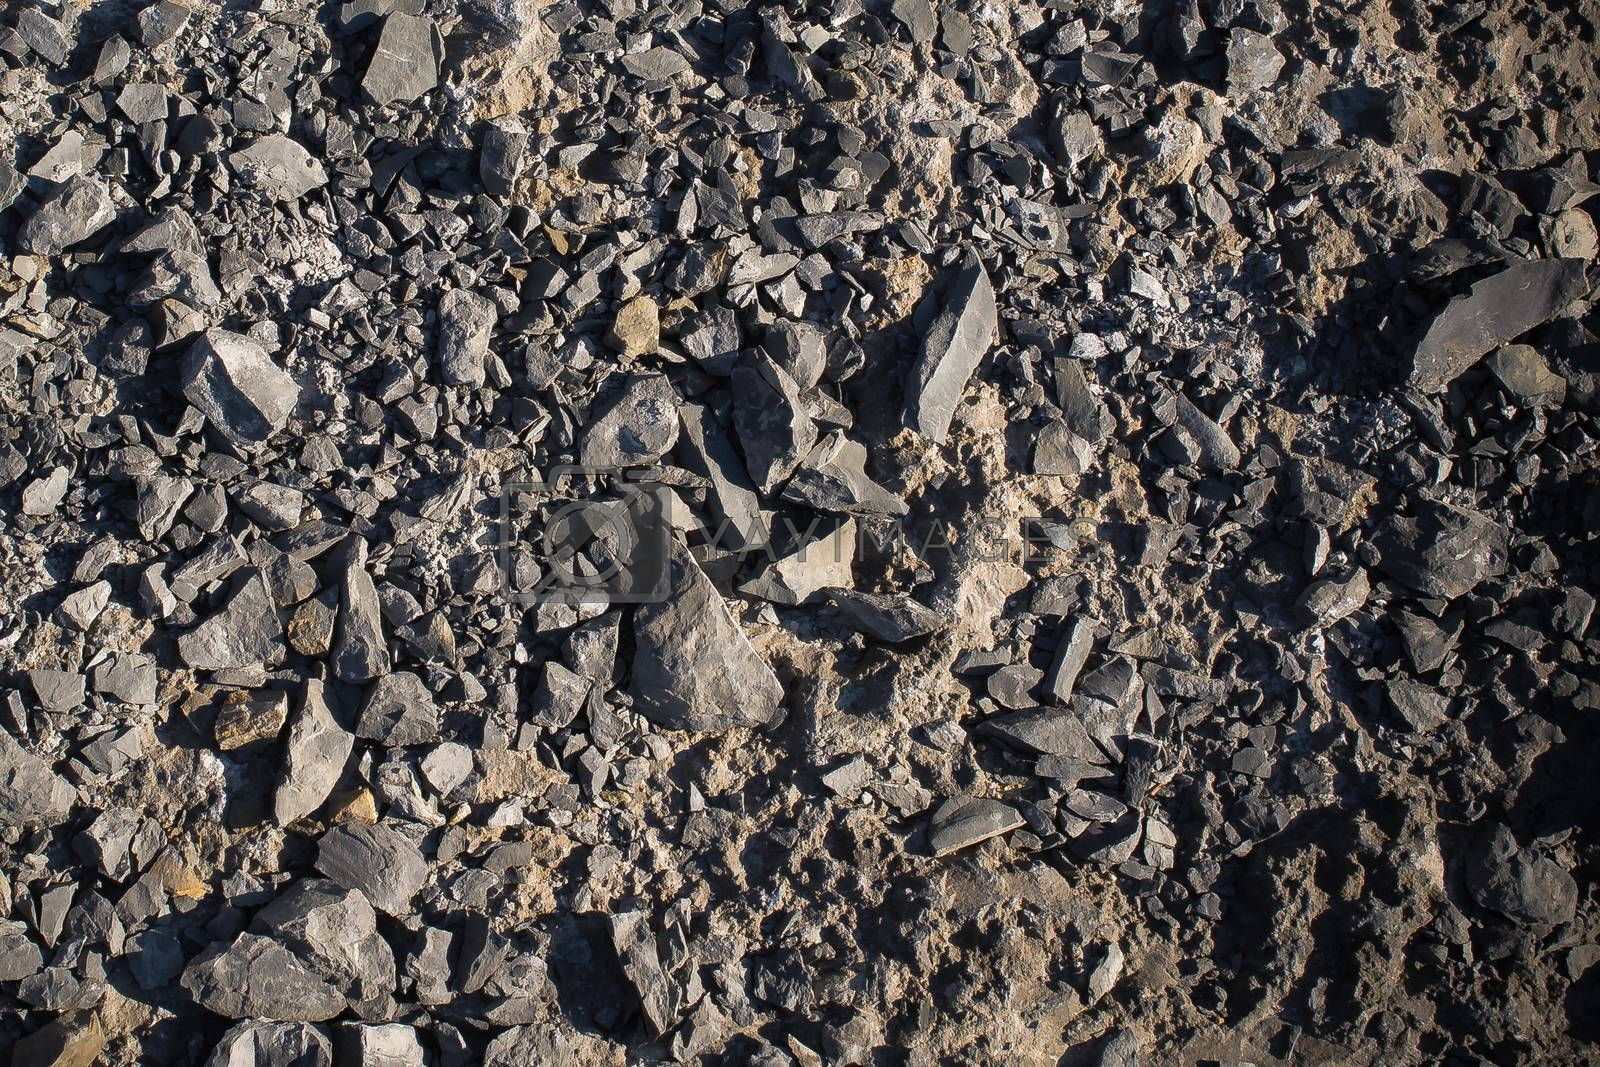 Background texture consist of full of little gravel pebbles